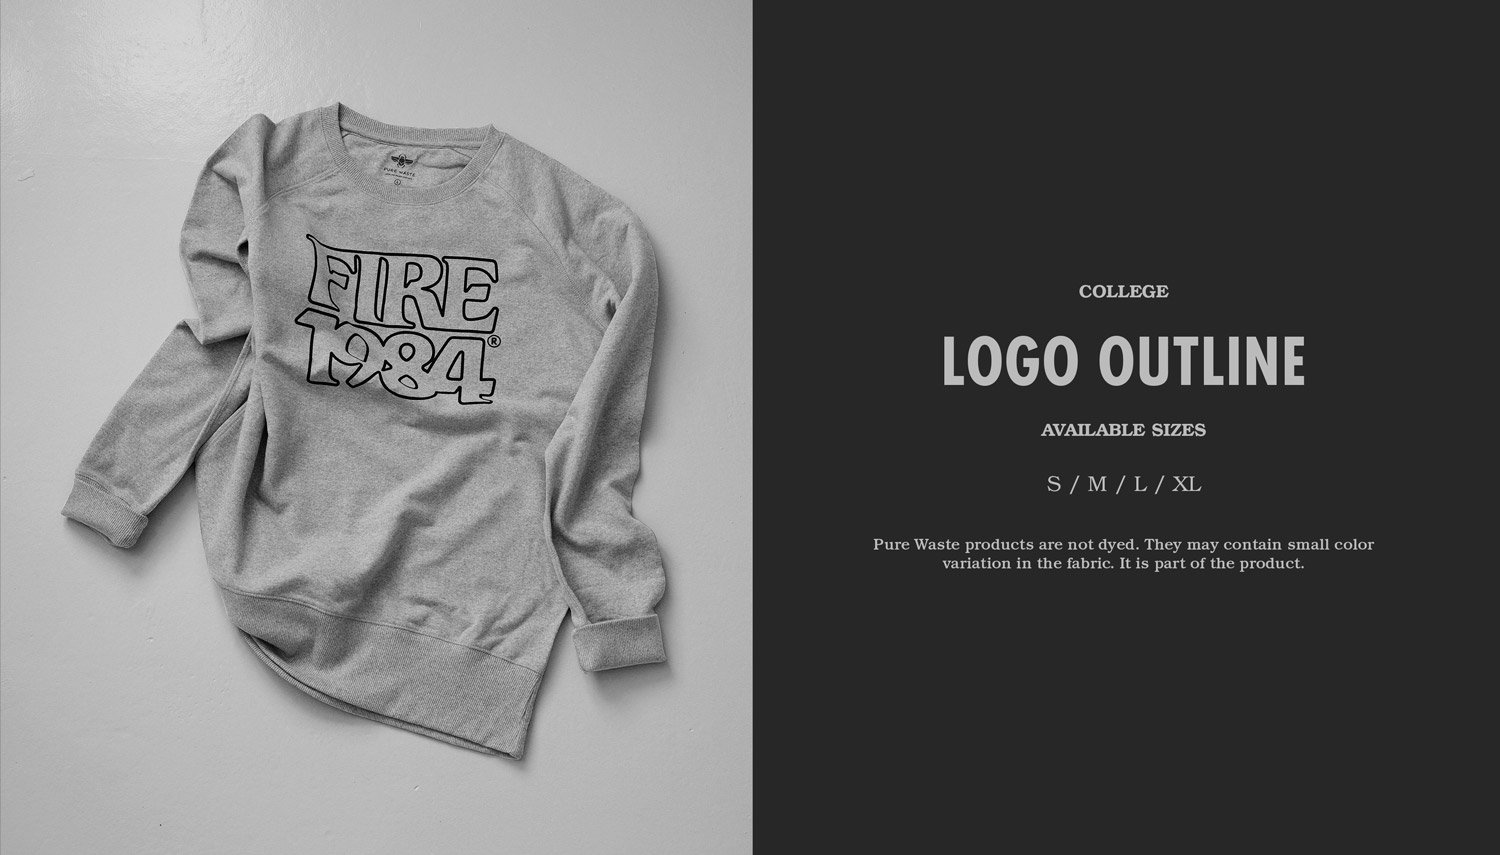 FIRE1984 catalog 20171 logo outline college